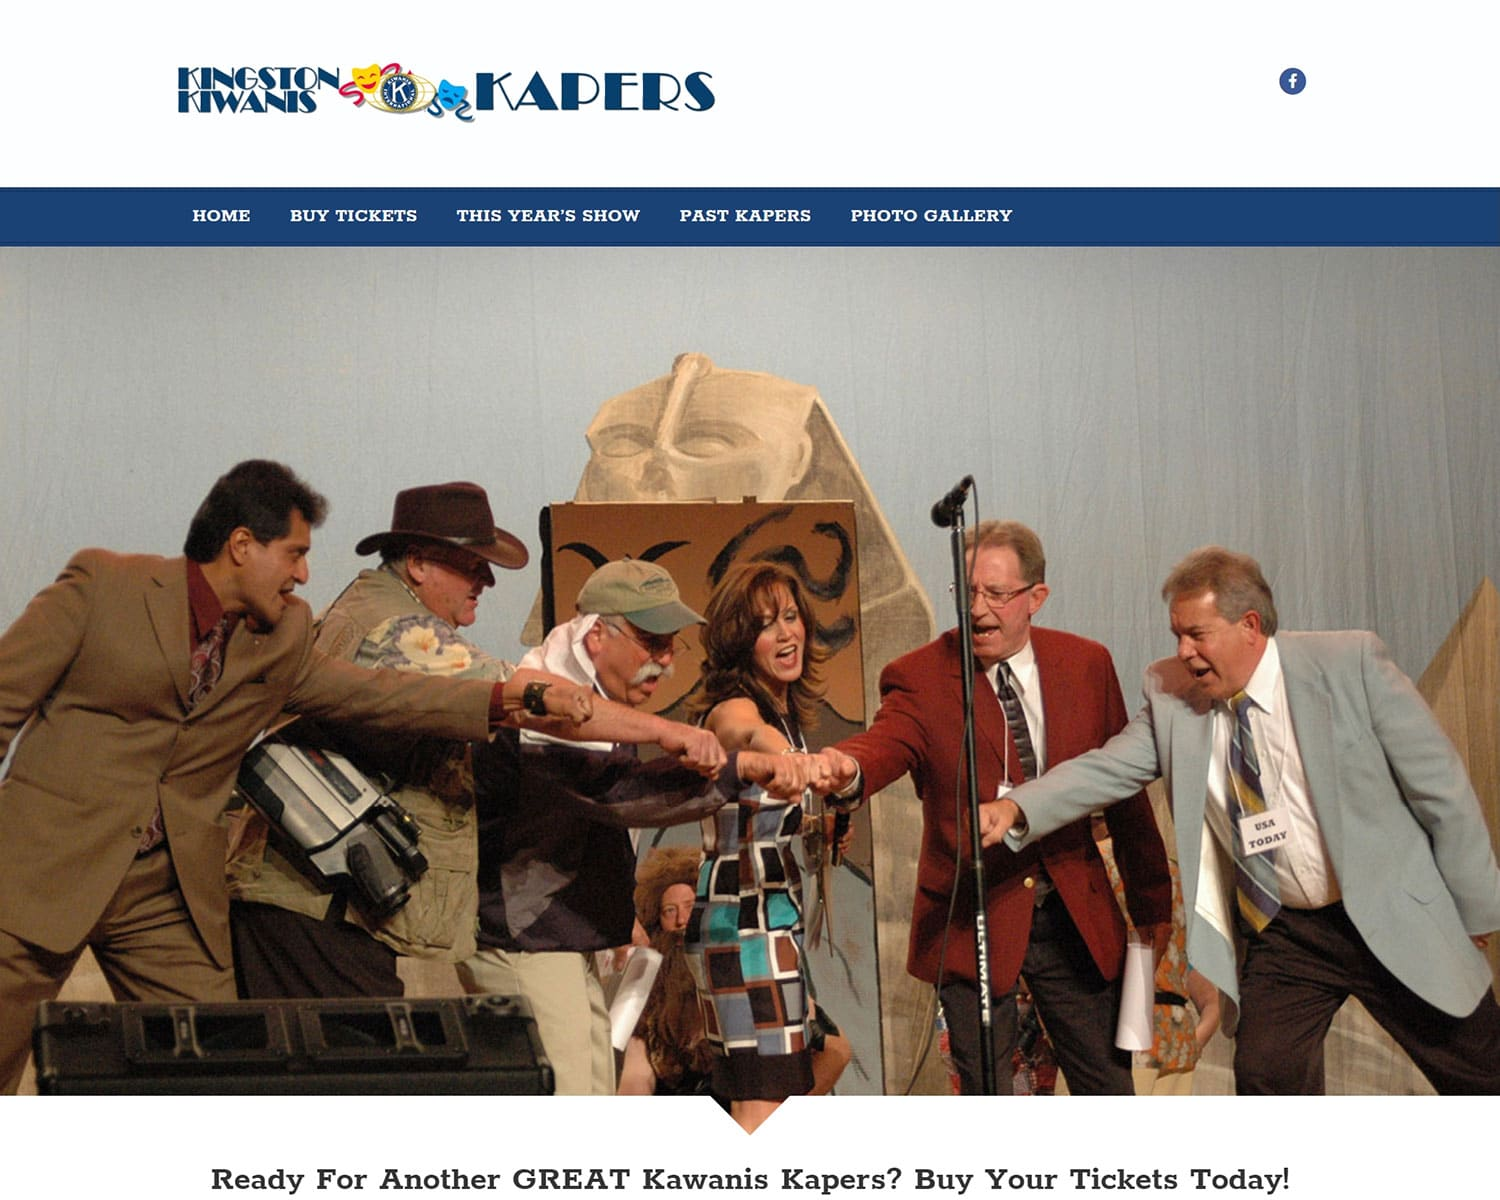 website design portfolio - Kiwanis Kapers